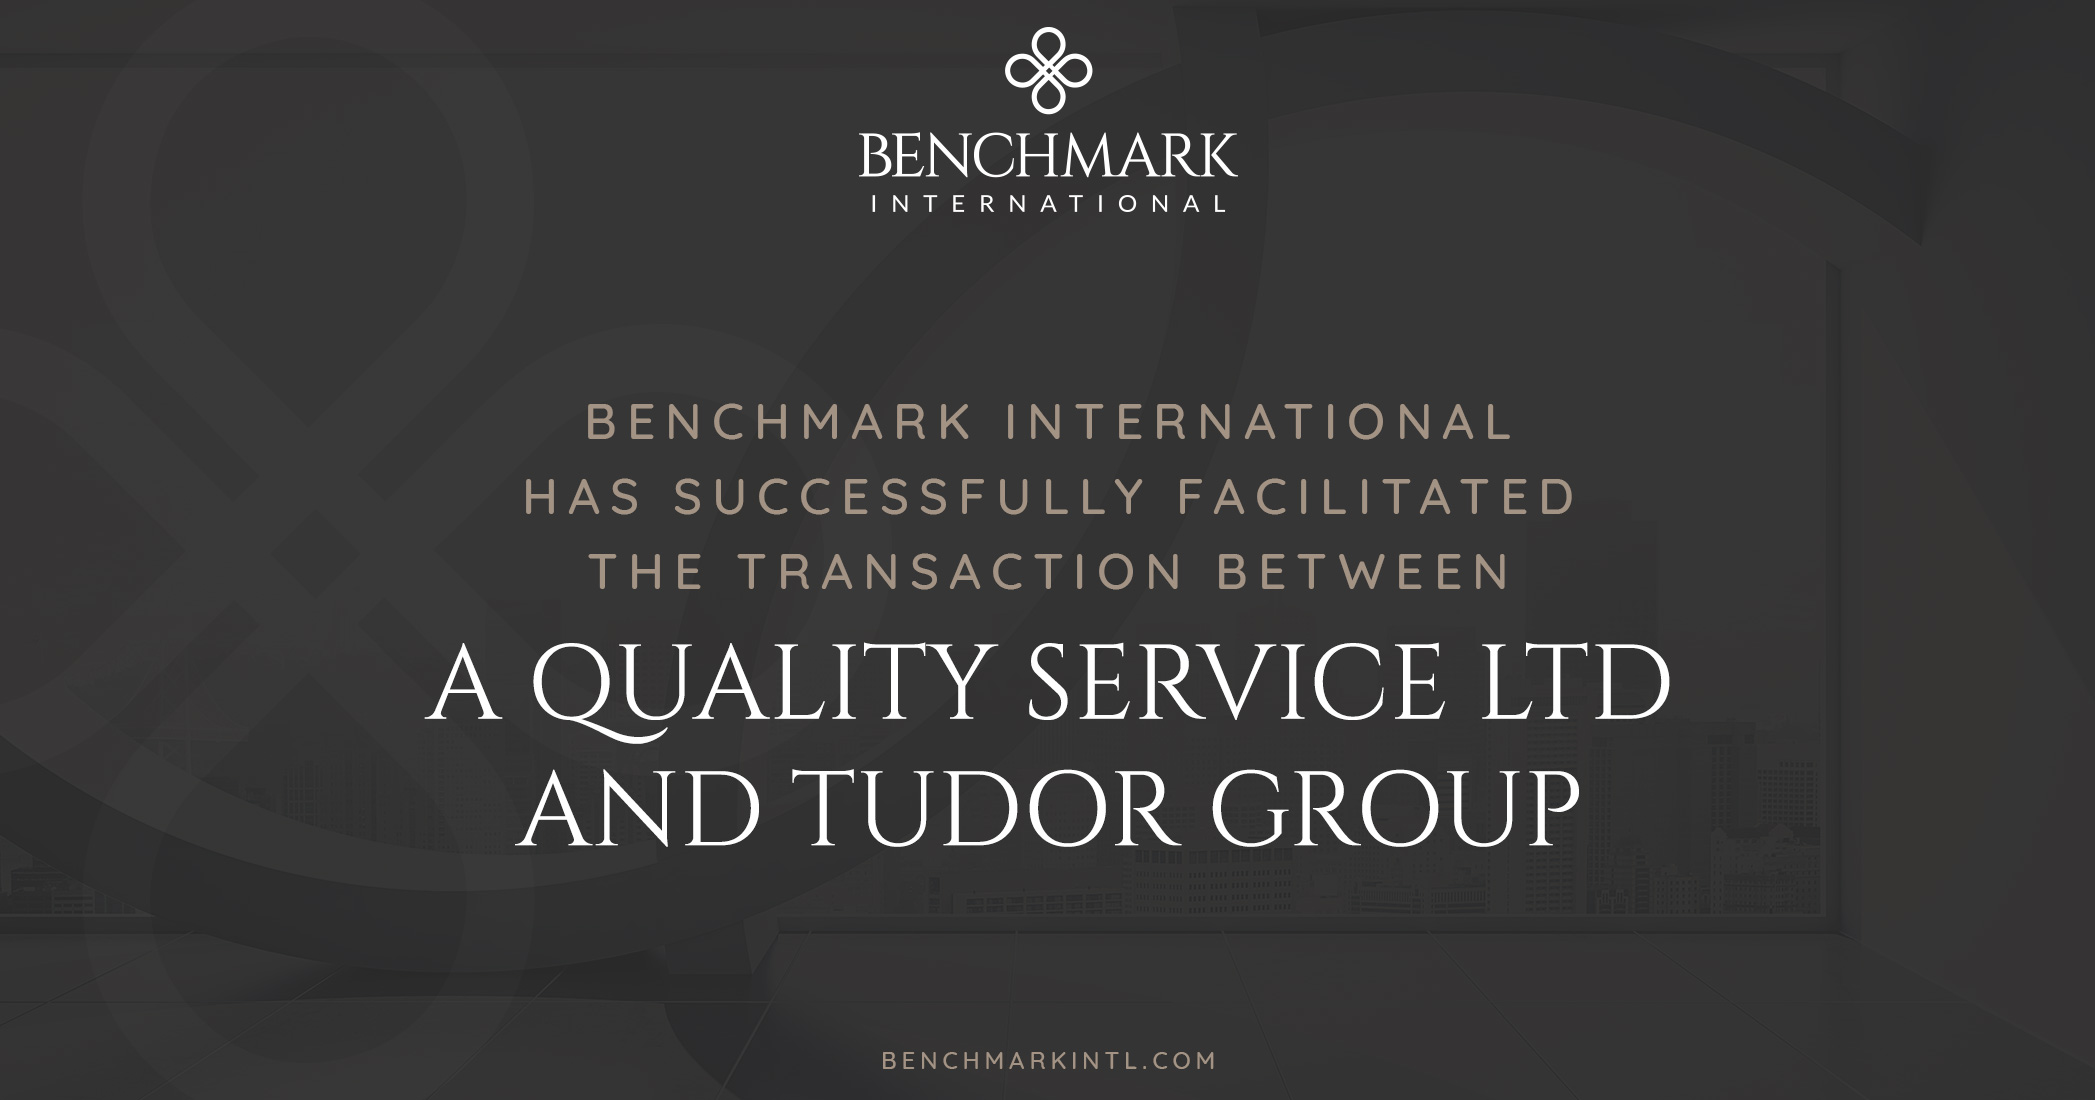 Benchmark International Successfully Facilitated the Transaction Between A Quality Service Ltd and Tudor Group